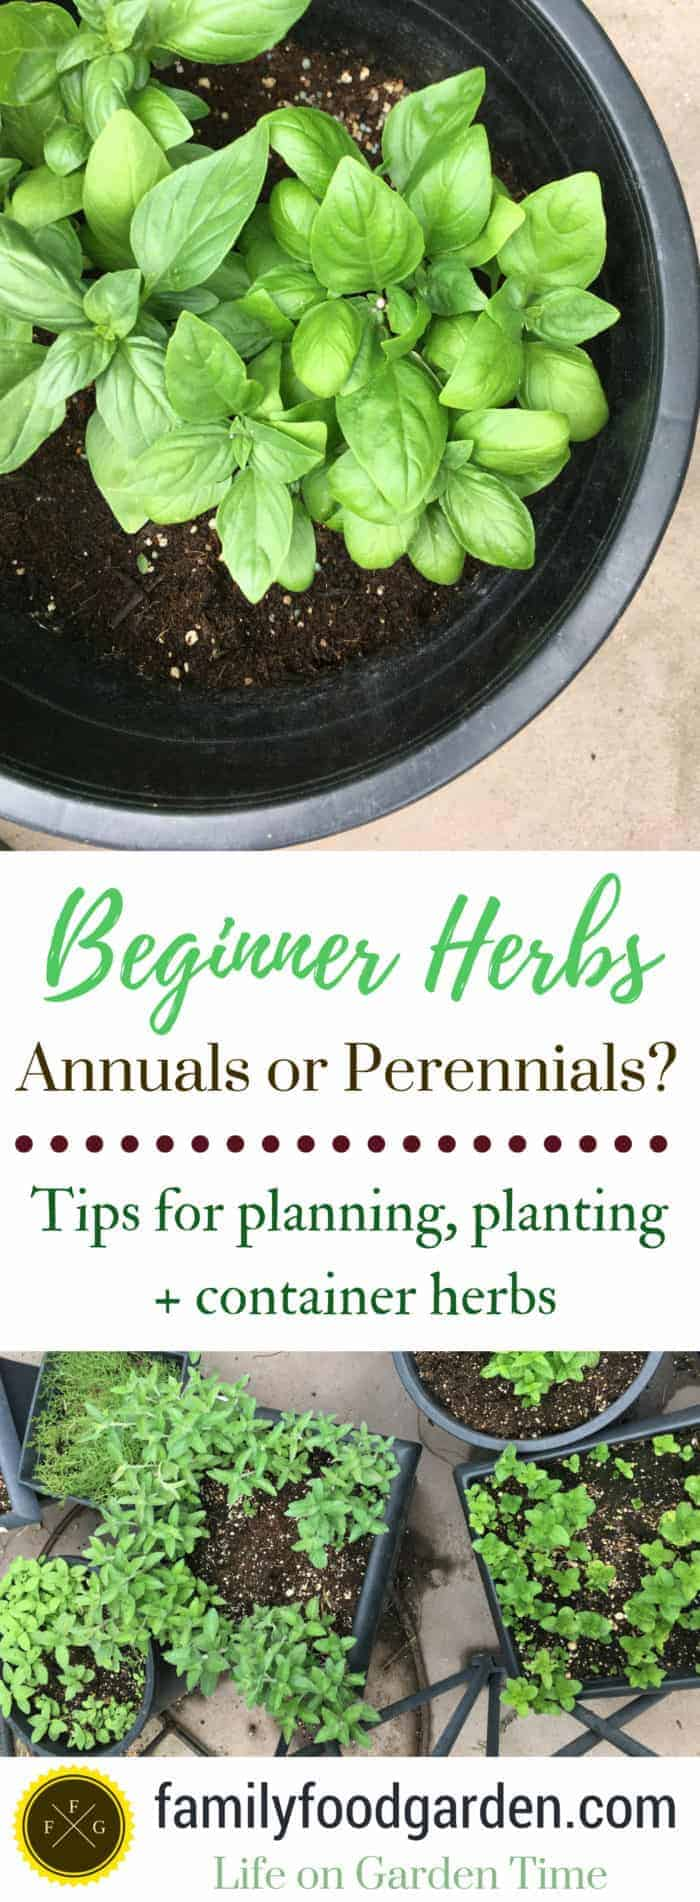 Beginner herb gardening tips